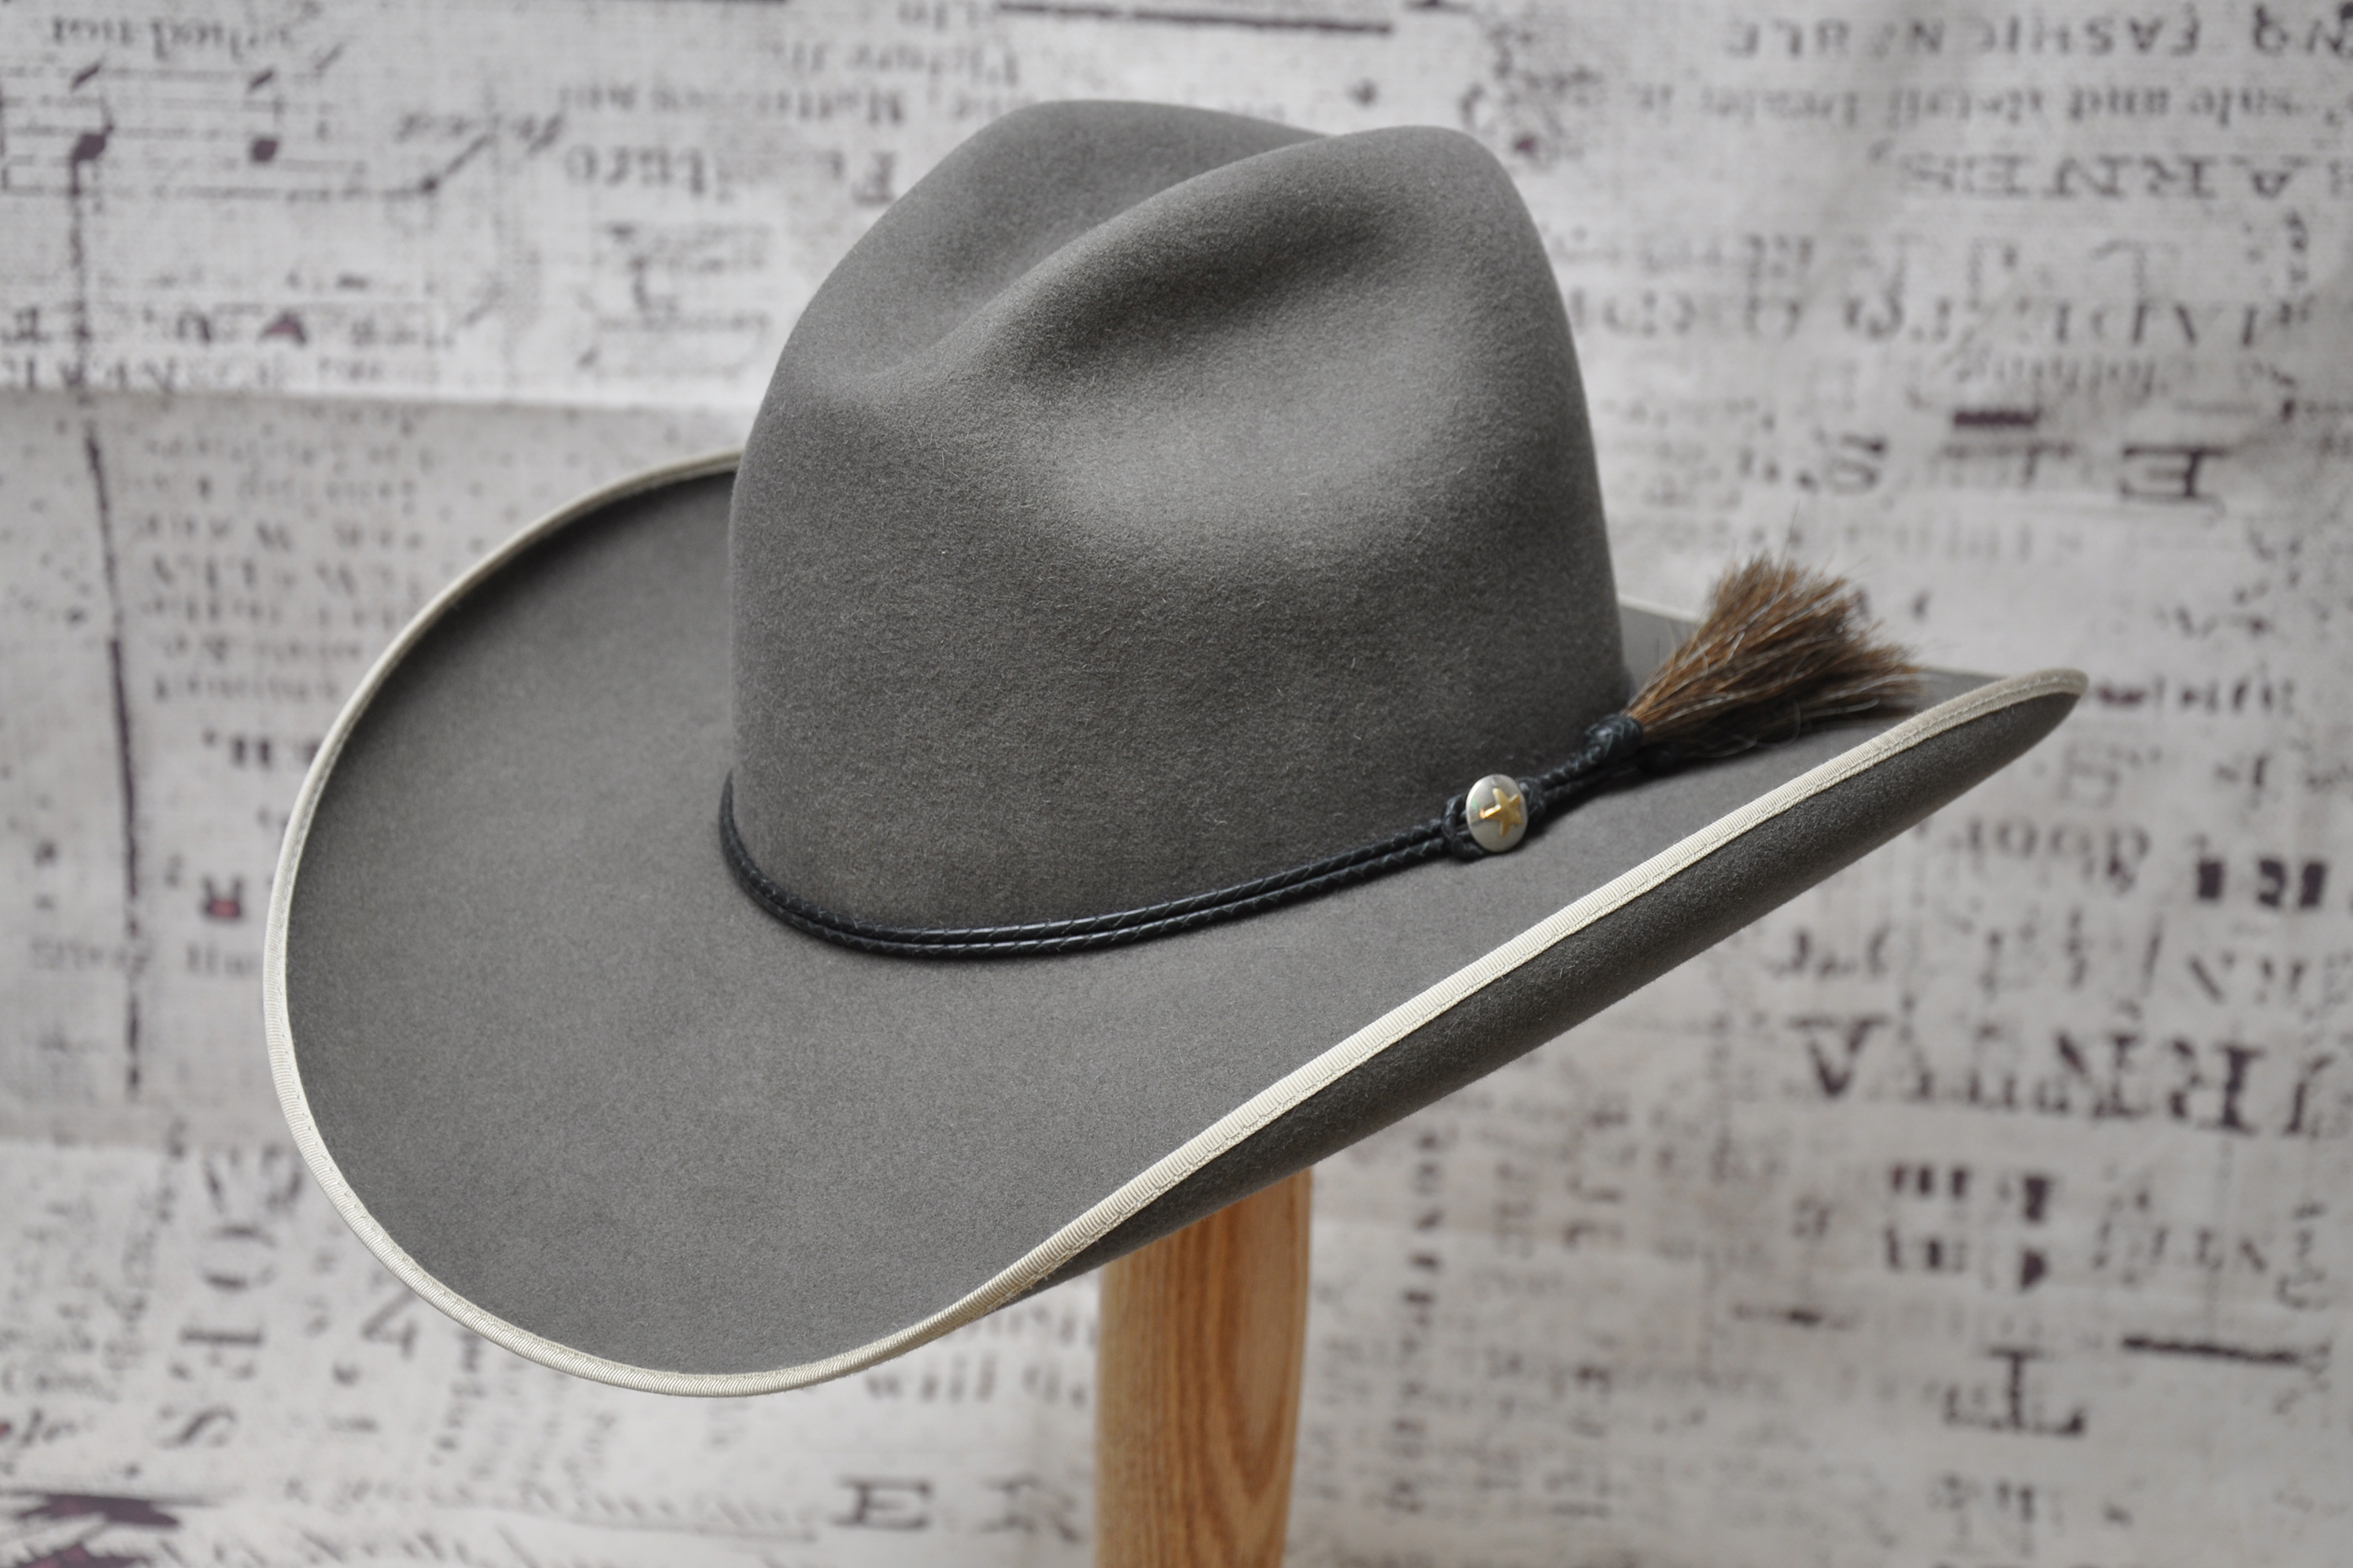 66ded7240 Where to Buy Authentic, Custom Hats in the West | Via